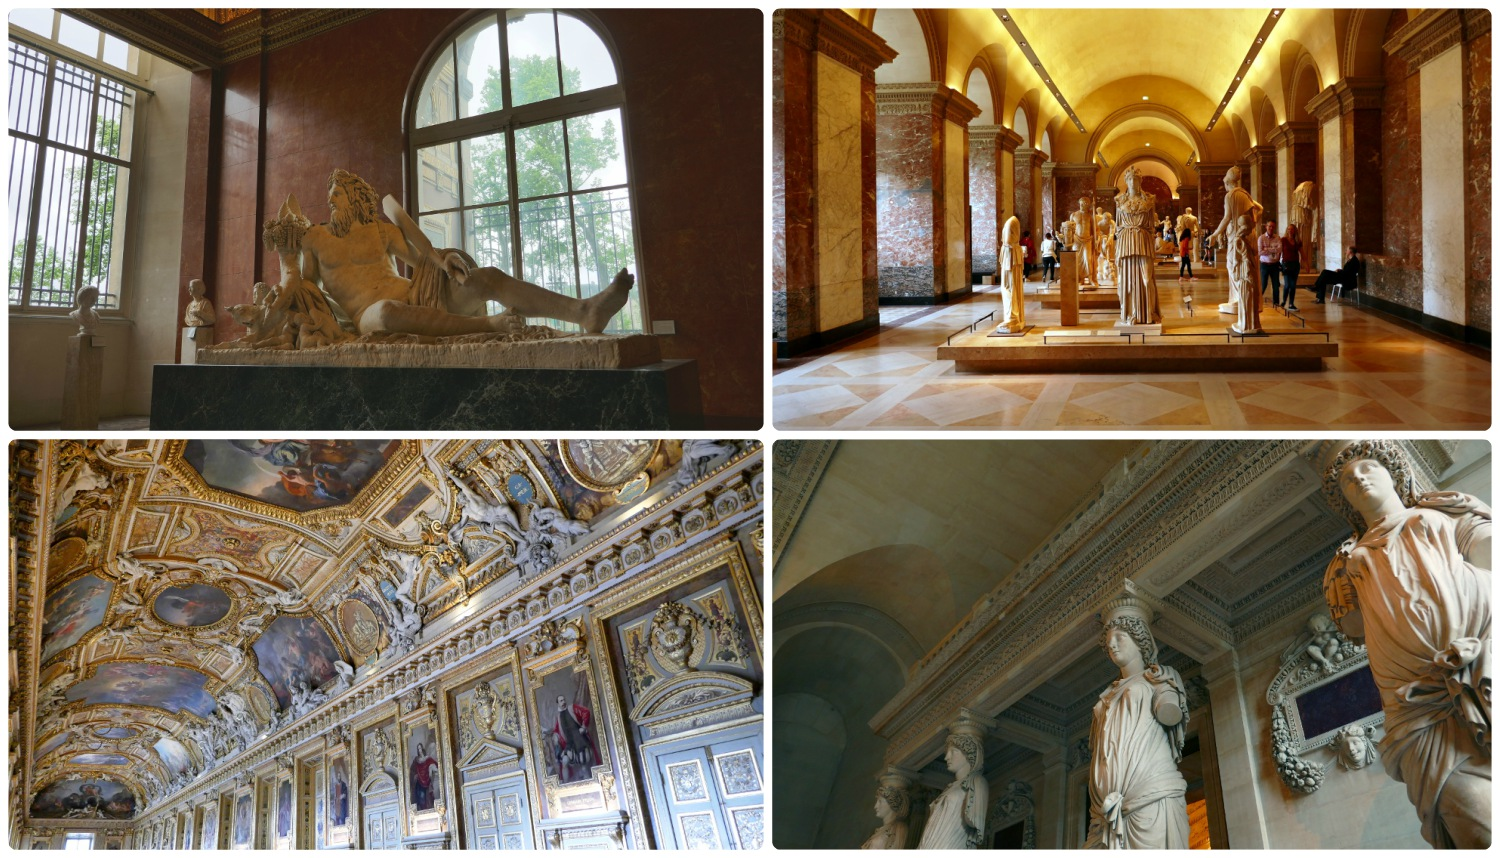 Greek sculptures in the Louvre and the Apollo Gallery (bottom left).